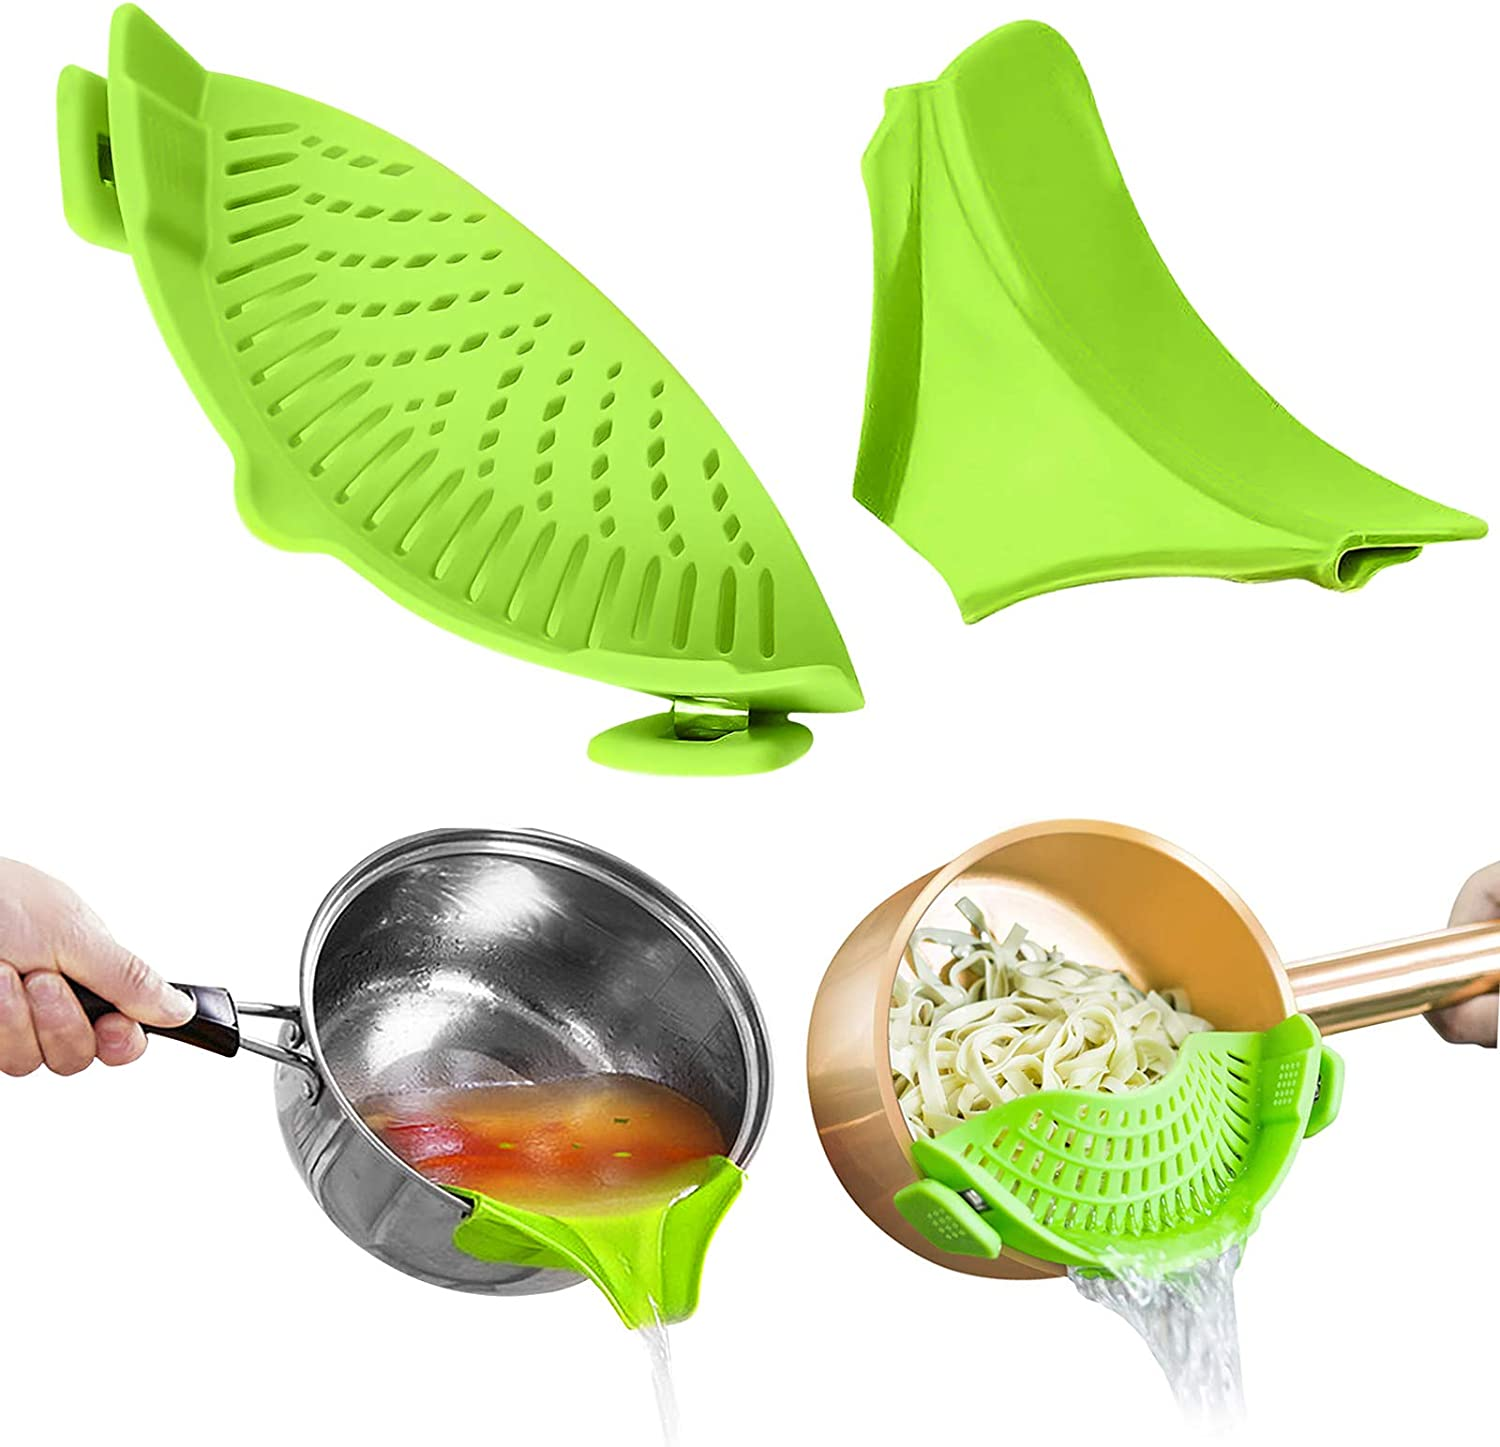 Gxhong Strain Pan Strainer Clip On Silicone Colander Strainer with Slip-On Bowl Pouring Mouth100% Non-toxic for Draining Food While Cooking or Pouring Liquid Fits Most Pans Pots Bowls